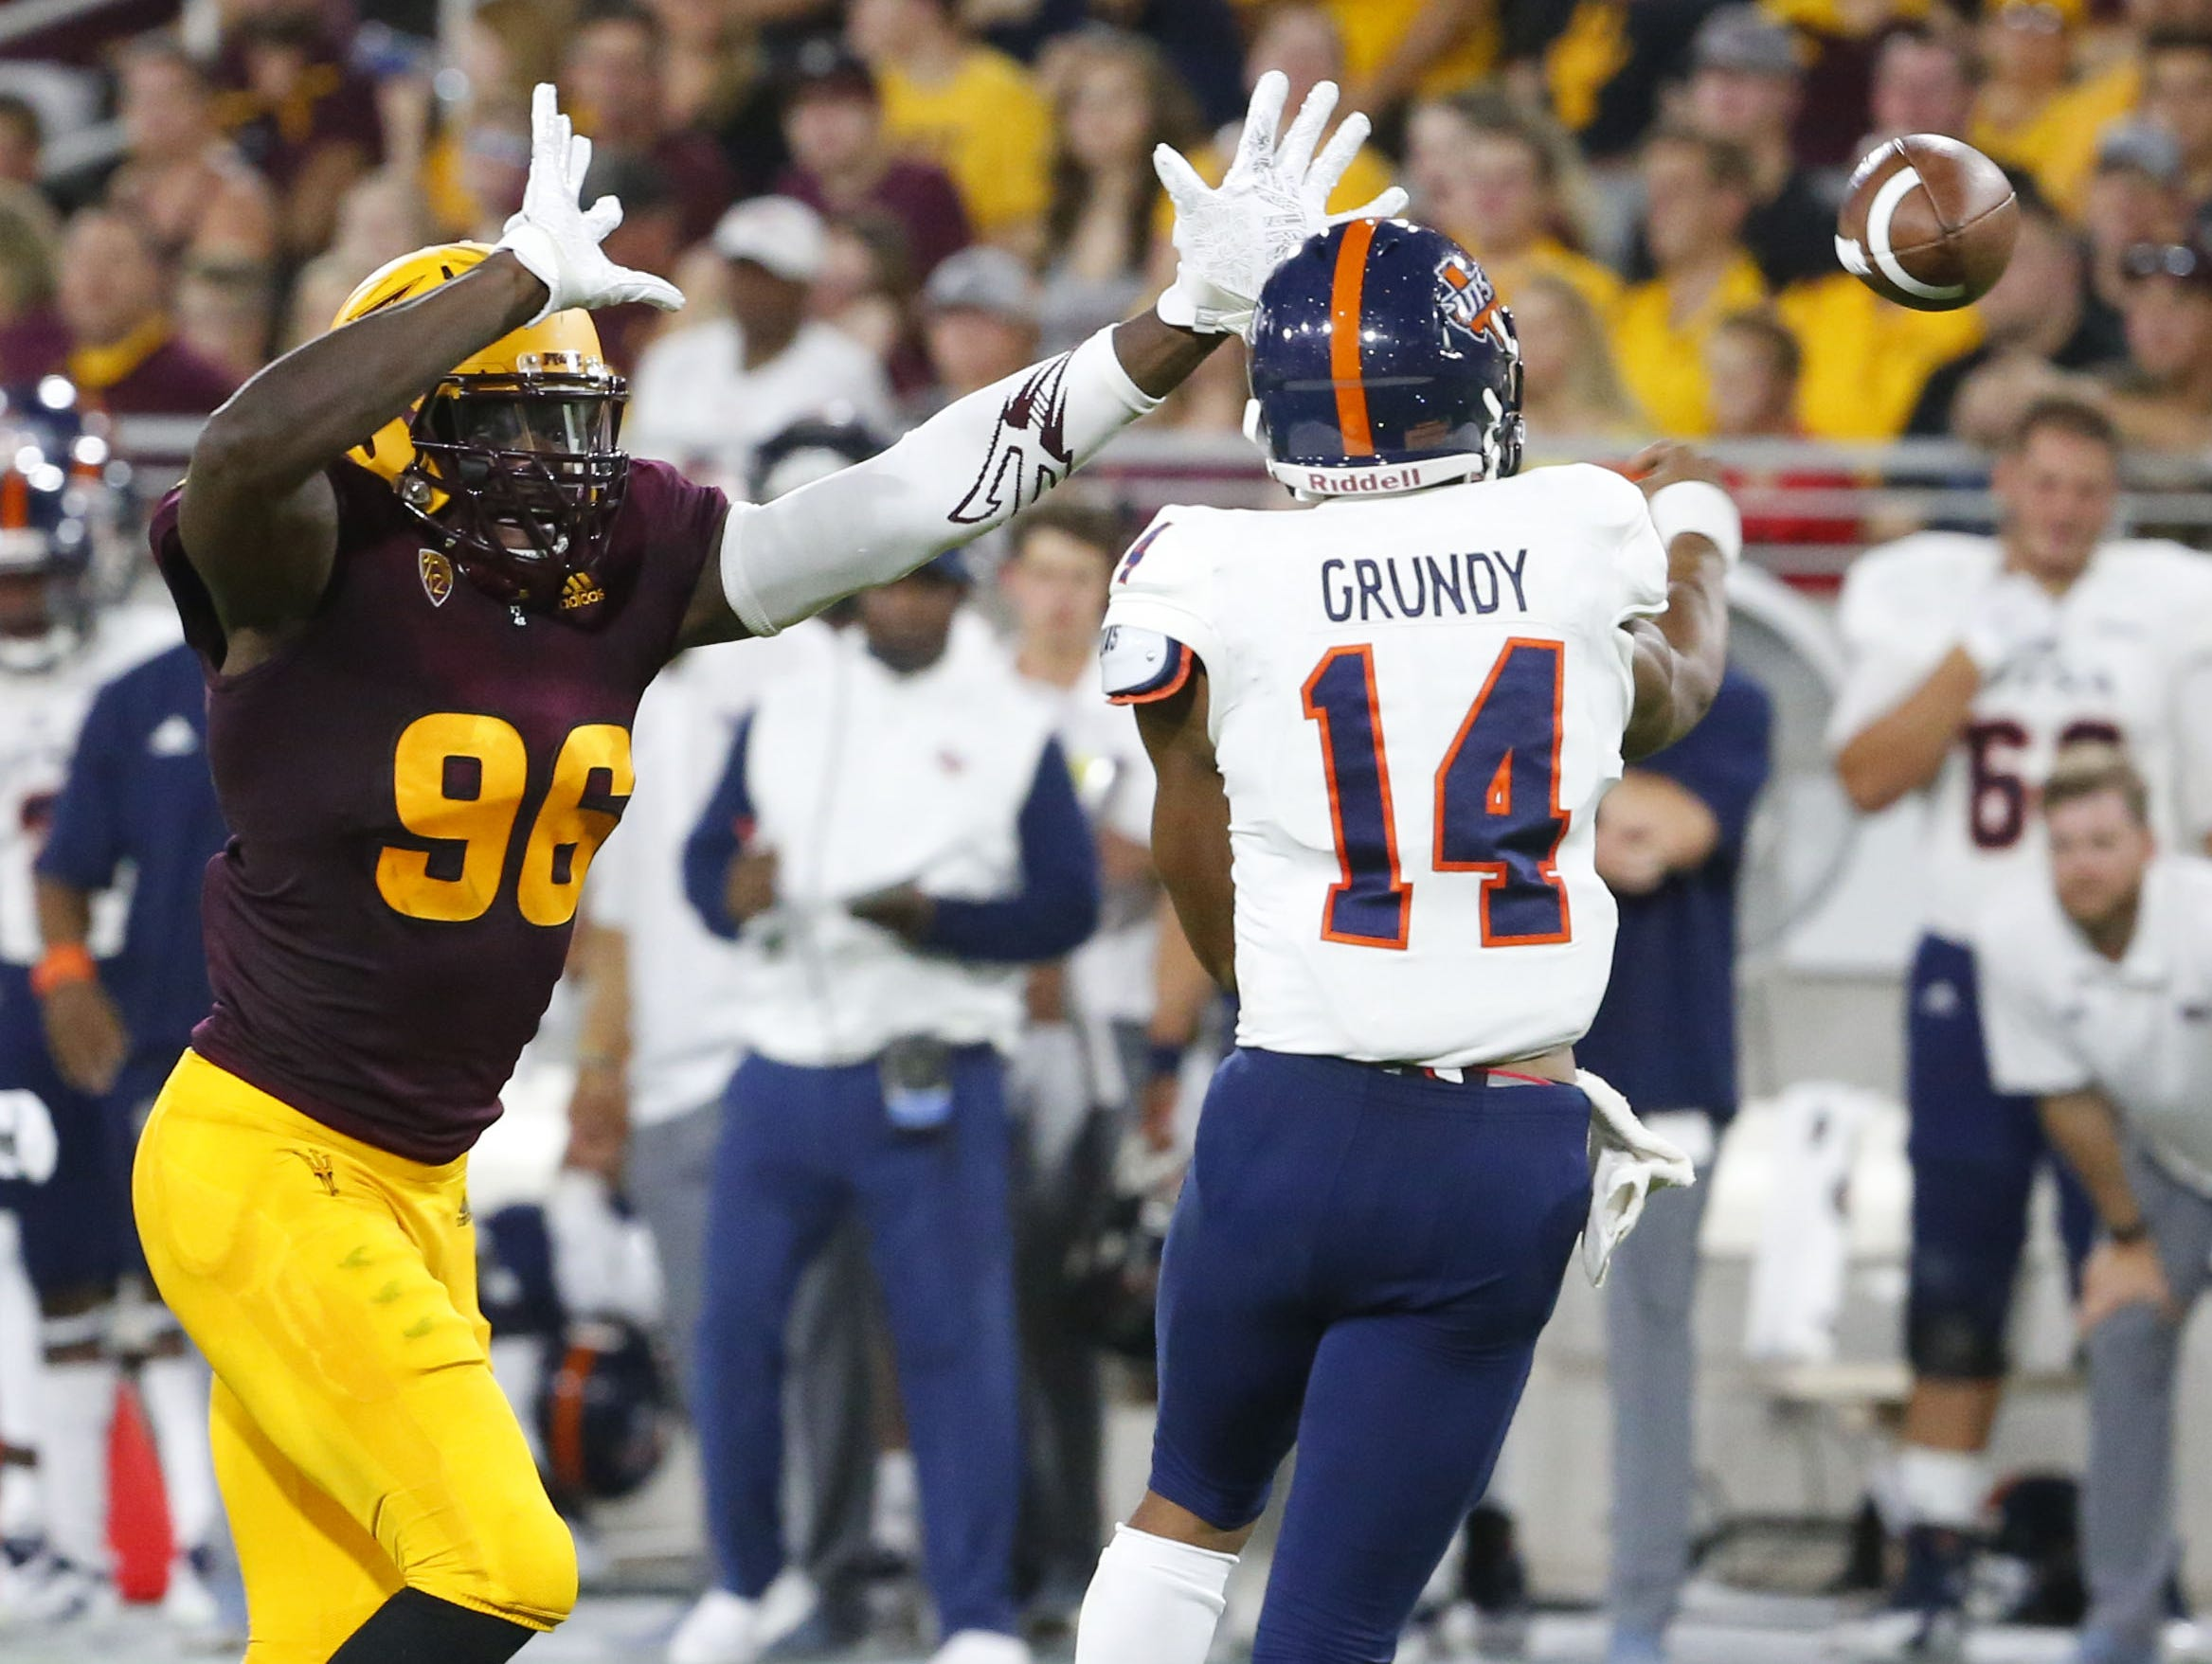 Arizona State Sun Devils defensive lineman Jalen Bates (96) attempts to block UTSA Roadrunners quarterback Cordale Grundy (14) pass during a football game at Sun Devil Stadium in Tempe on September 1, 2018.